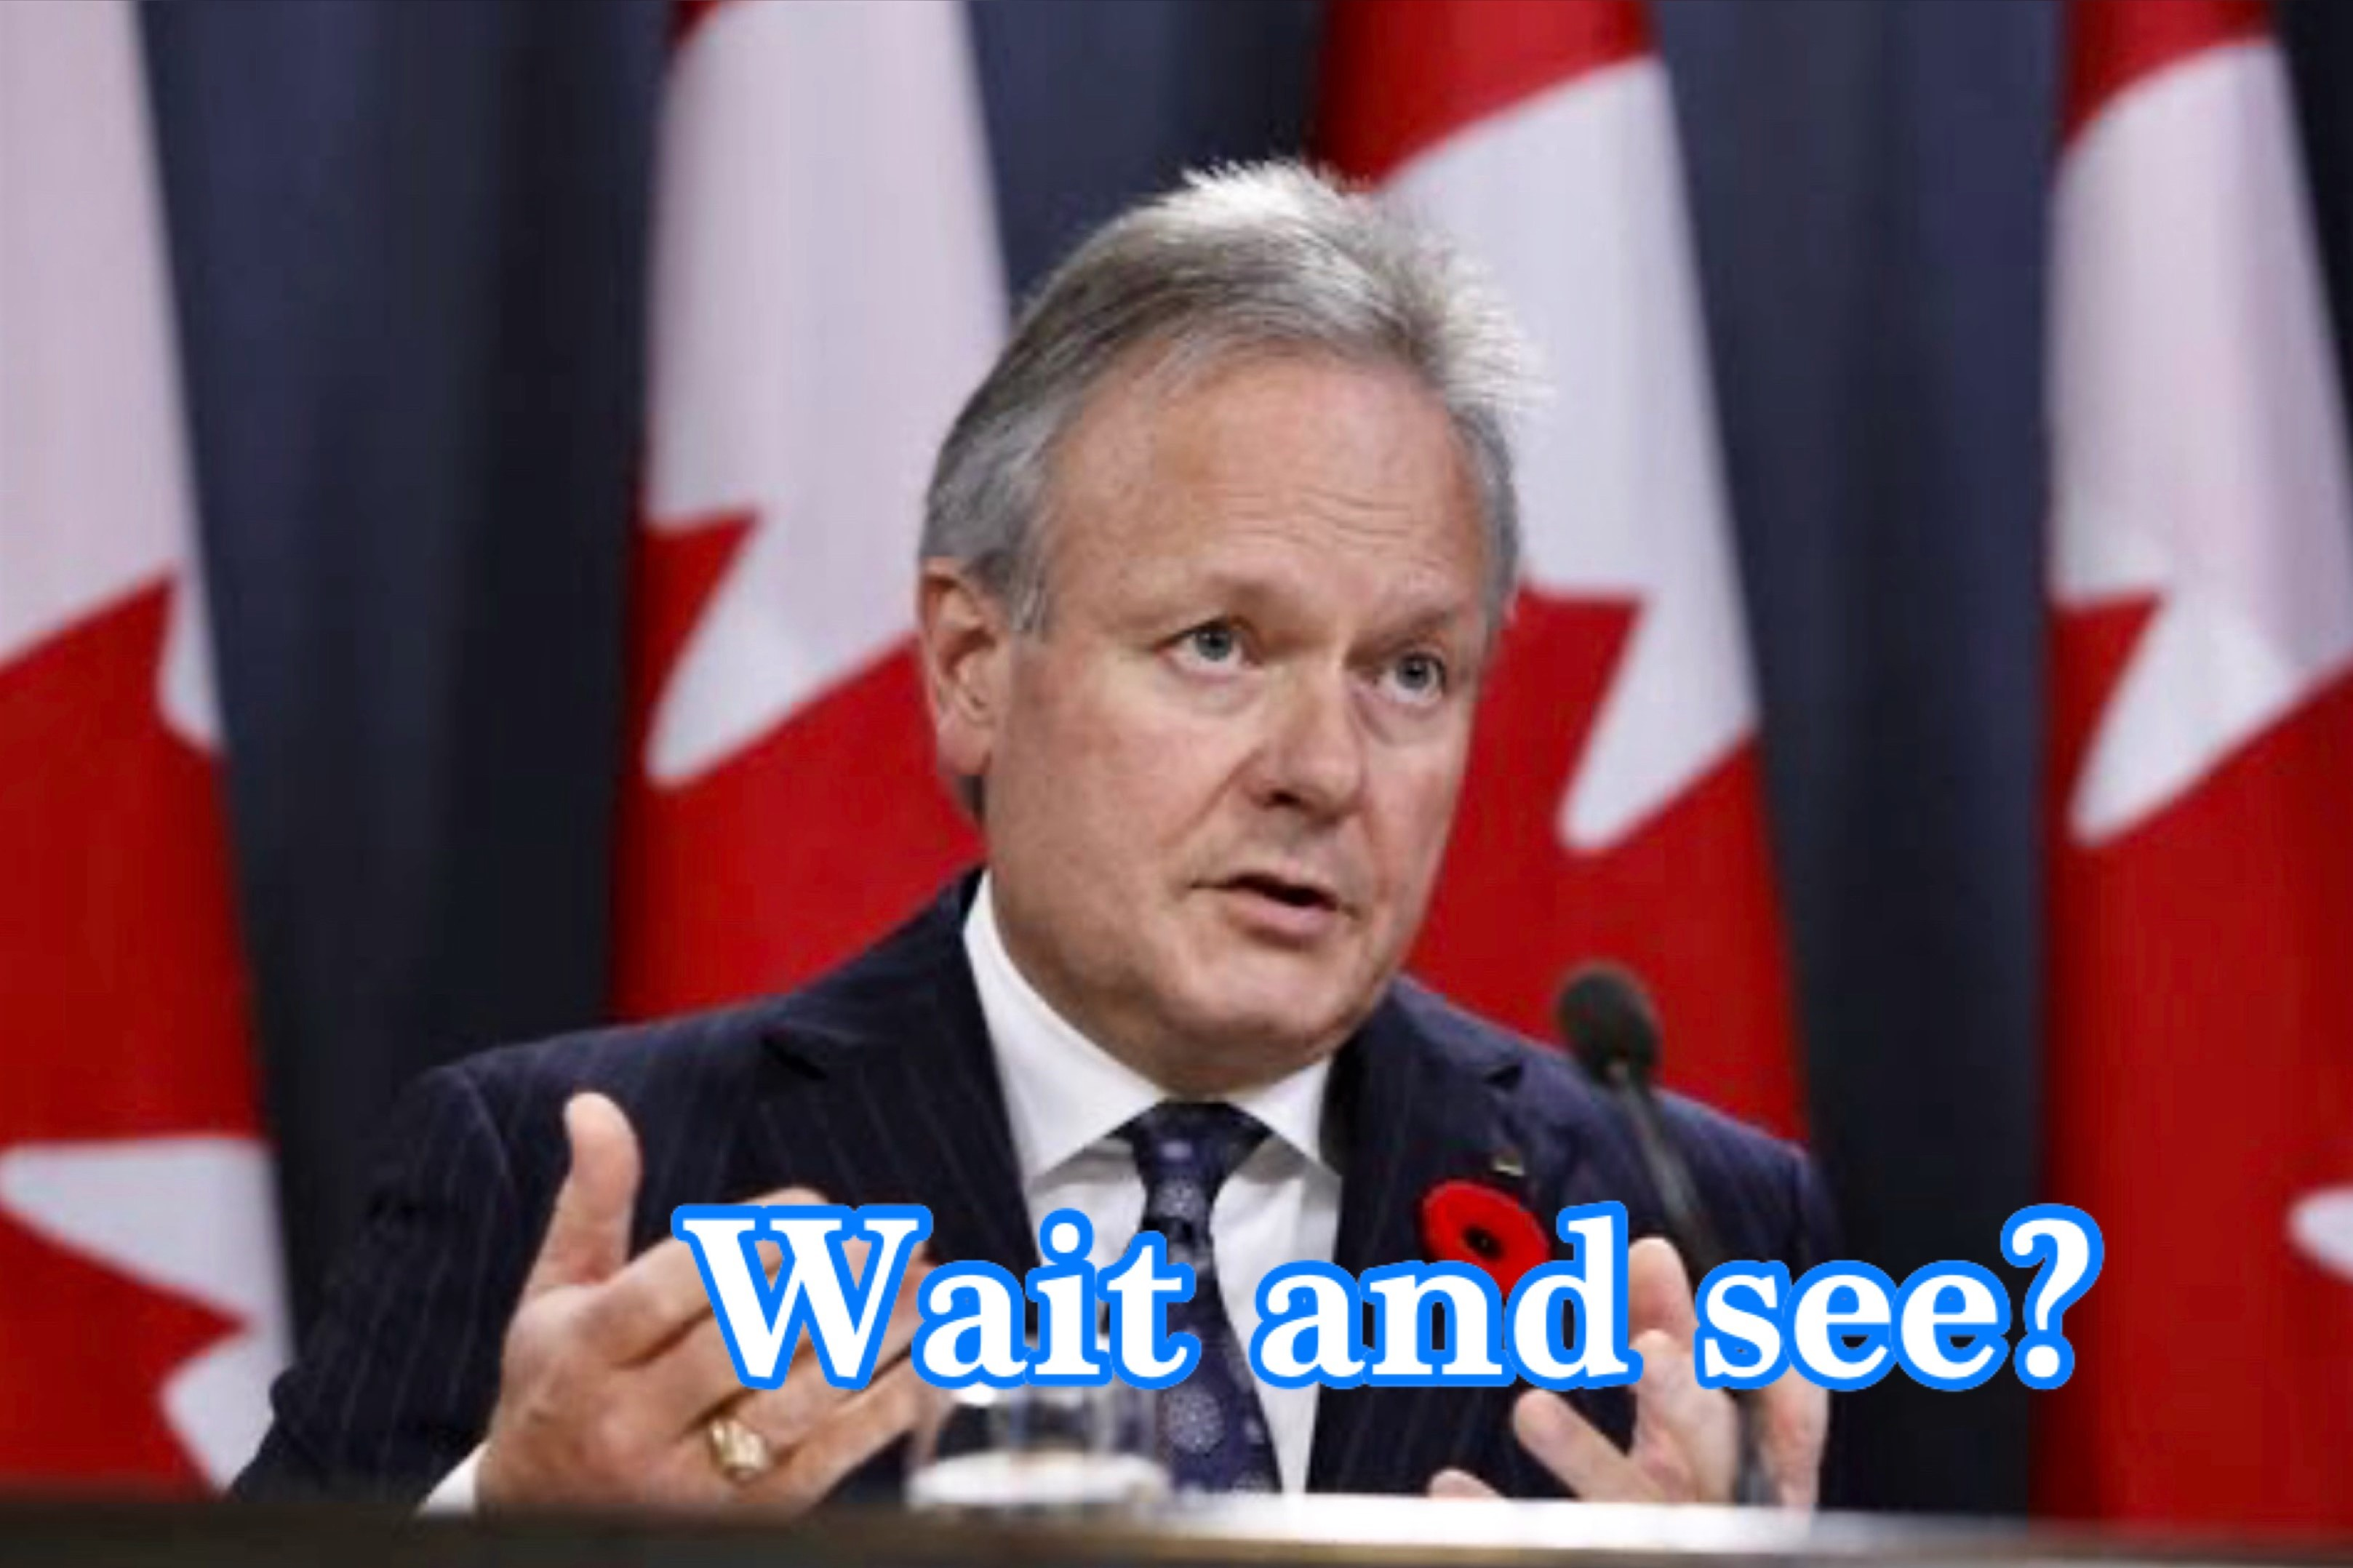 Bank of Canada to Leave Key Interest Rate Unchanged This Week: Survey